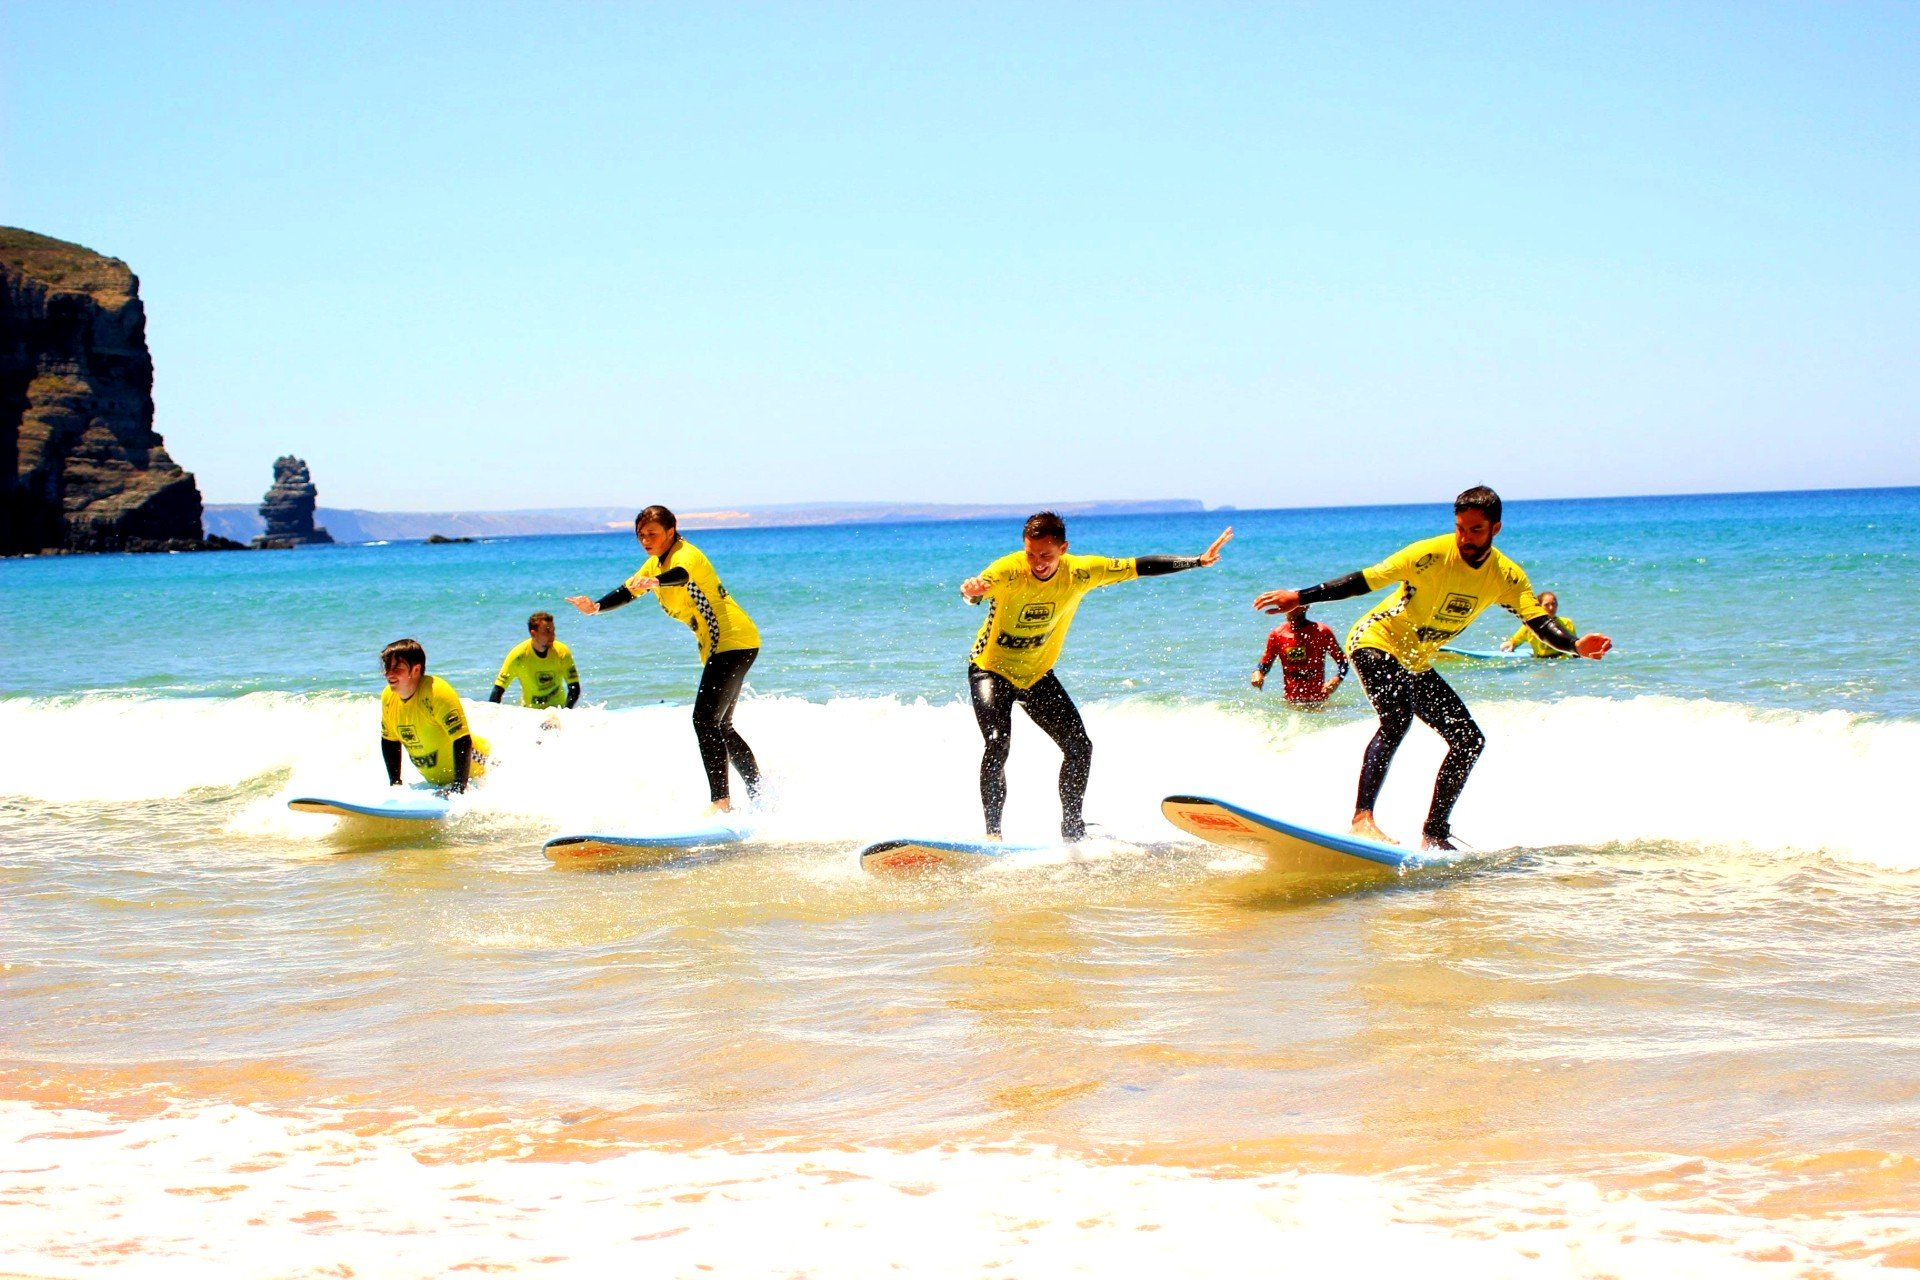 Five guys are surfing in the Algarve.